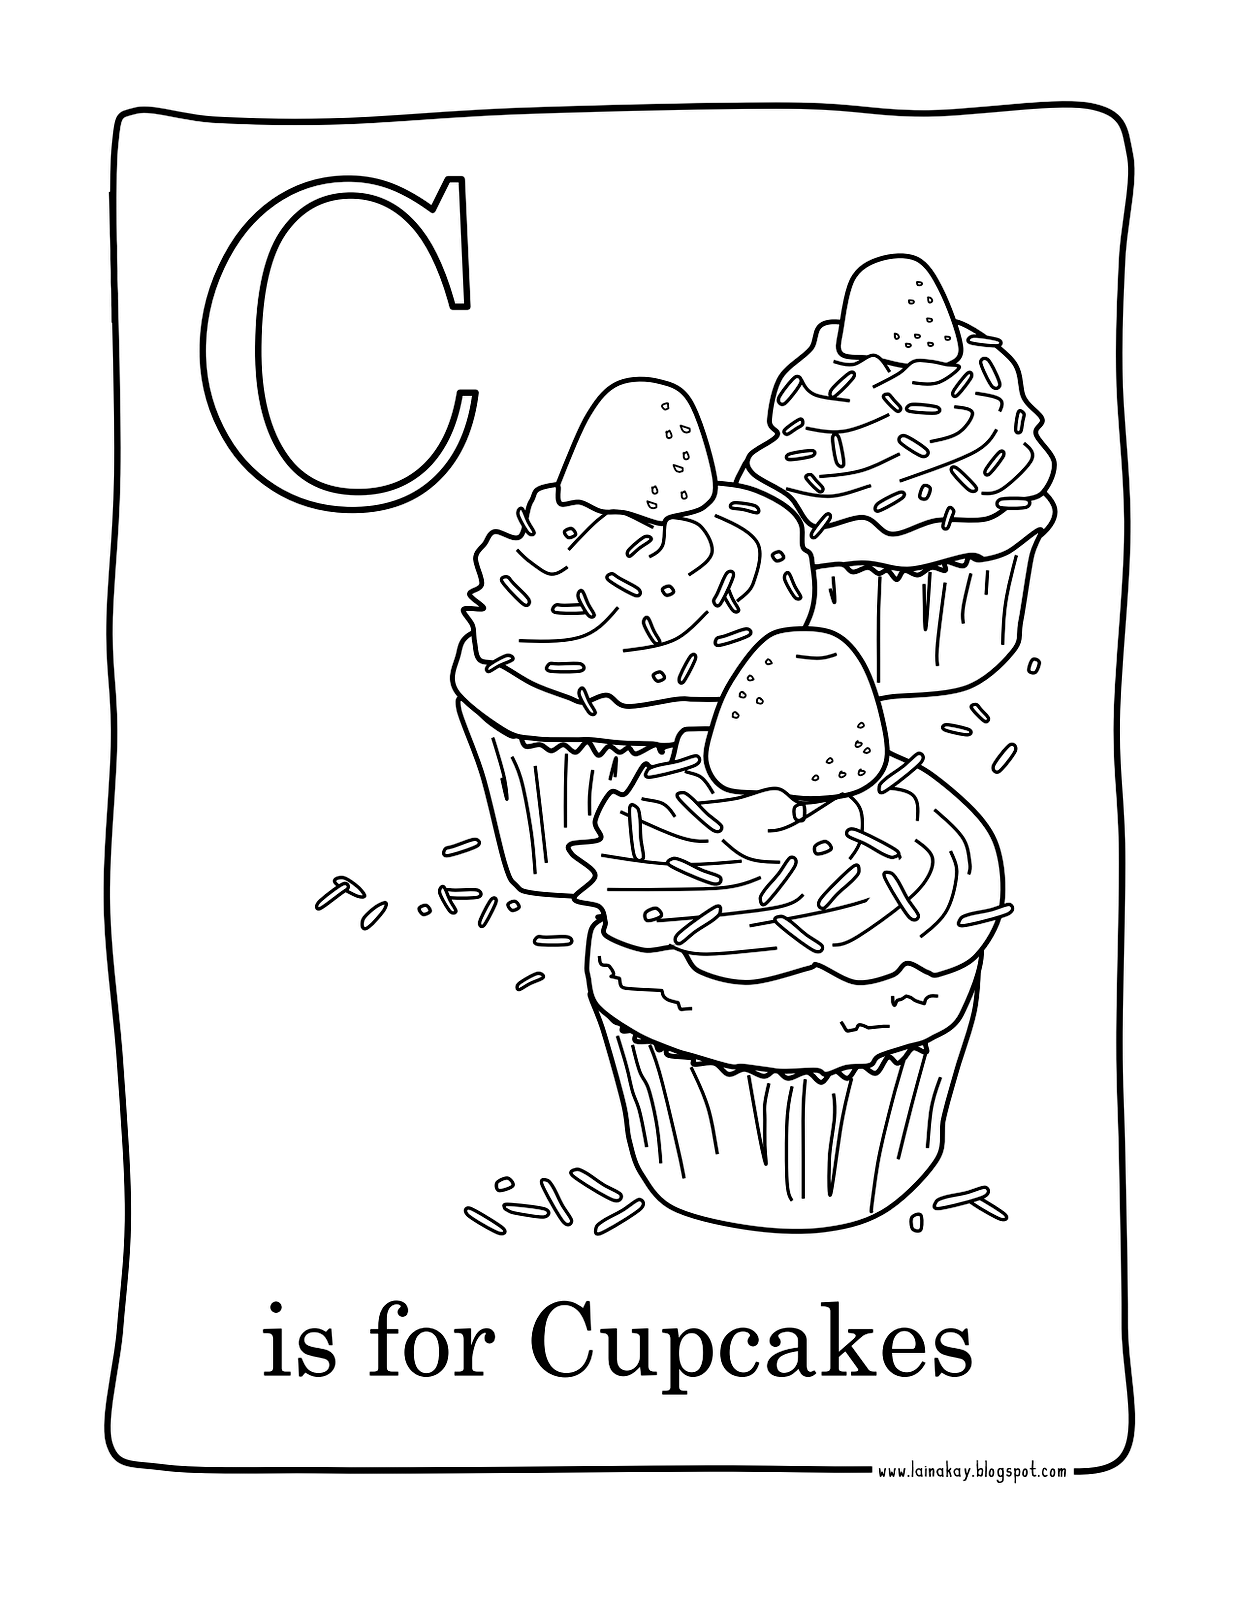 C for Cupcakes Cupcakes Adult